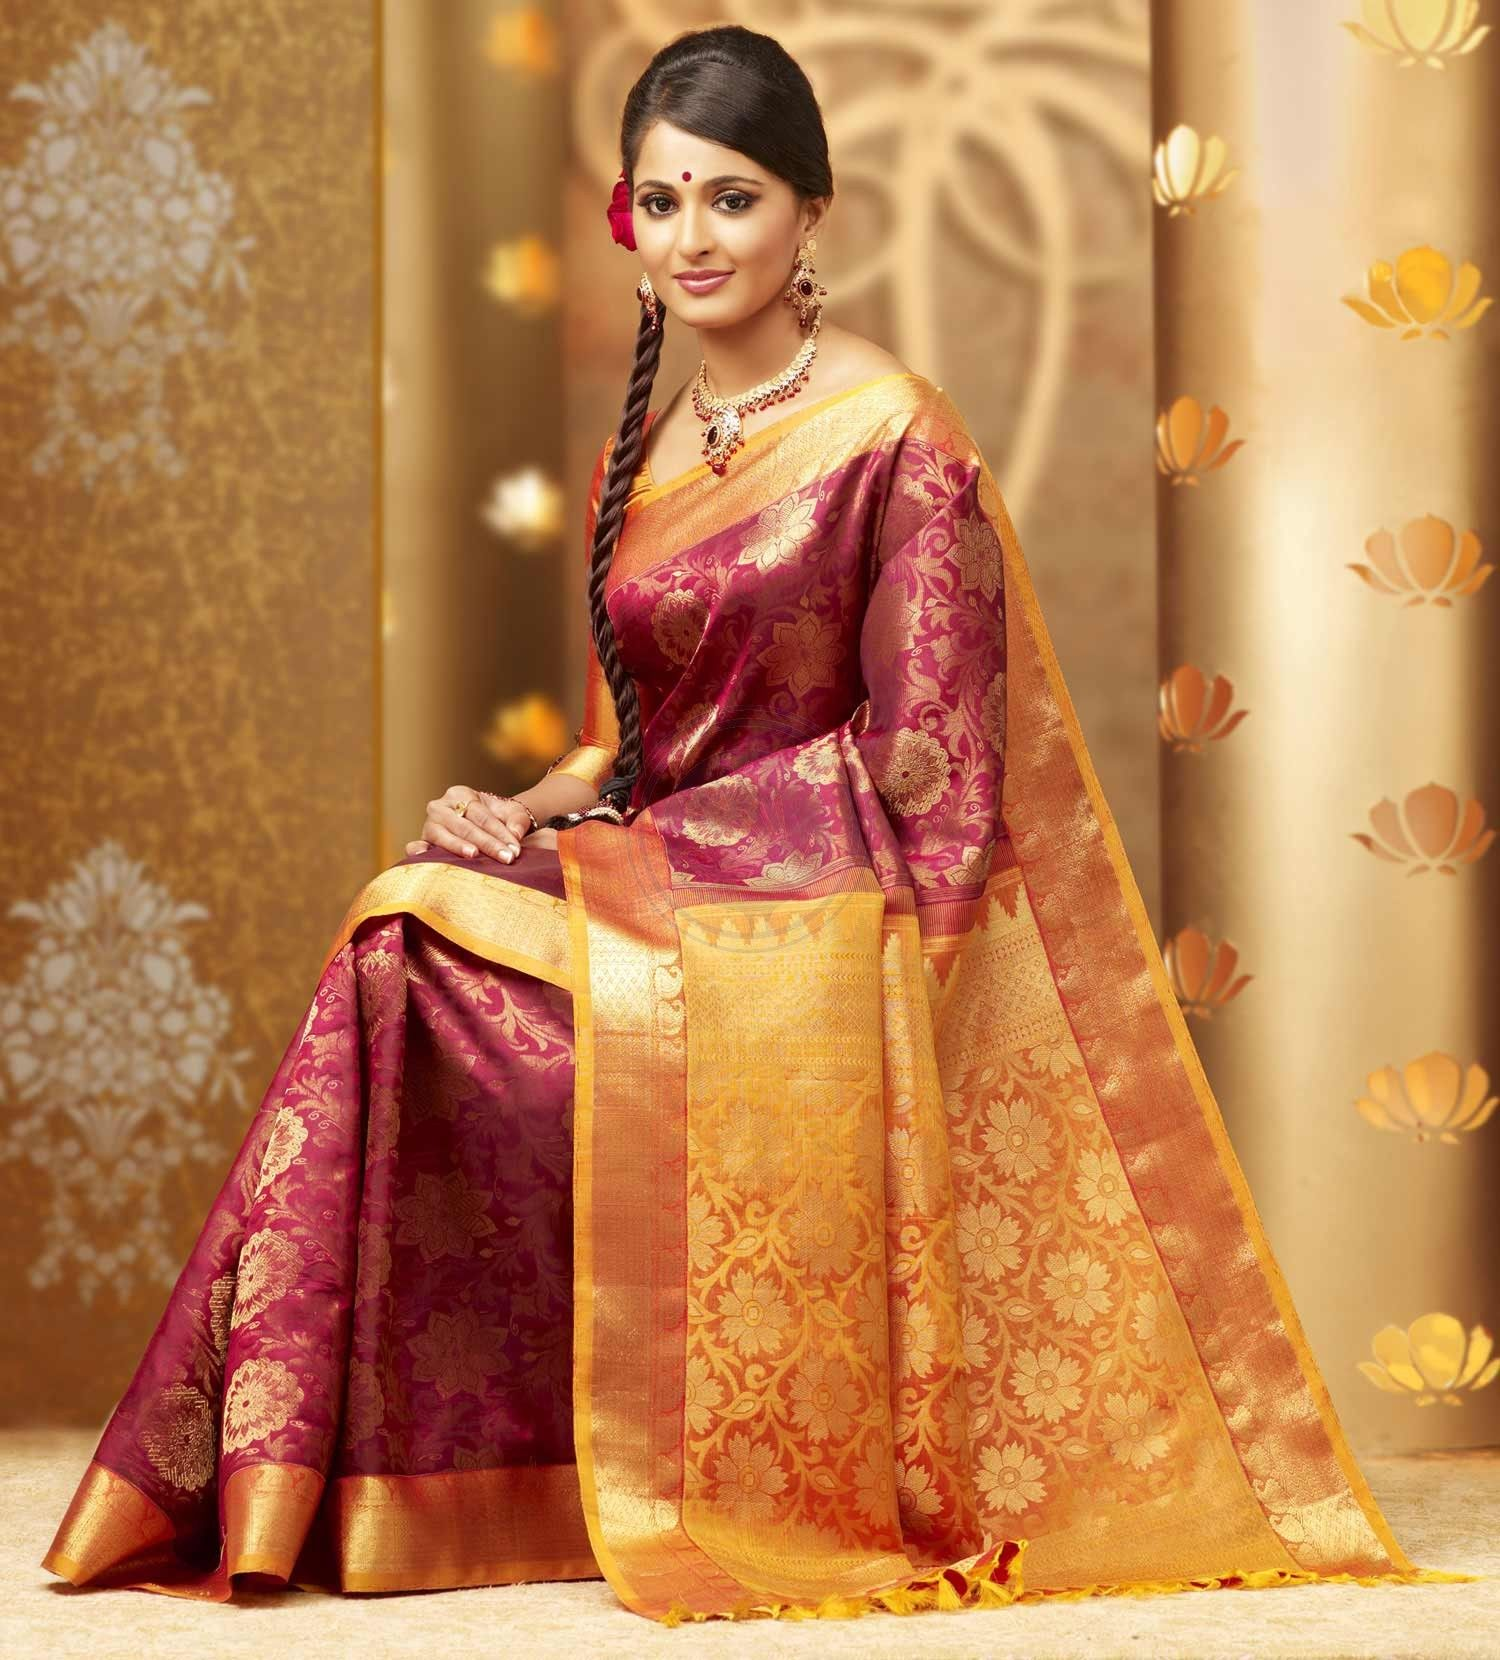 The Chennai Silks - Vivaha Branded Pure Kanchipuram Silks sarees ...